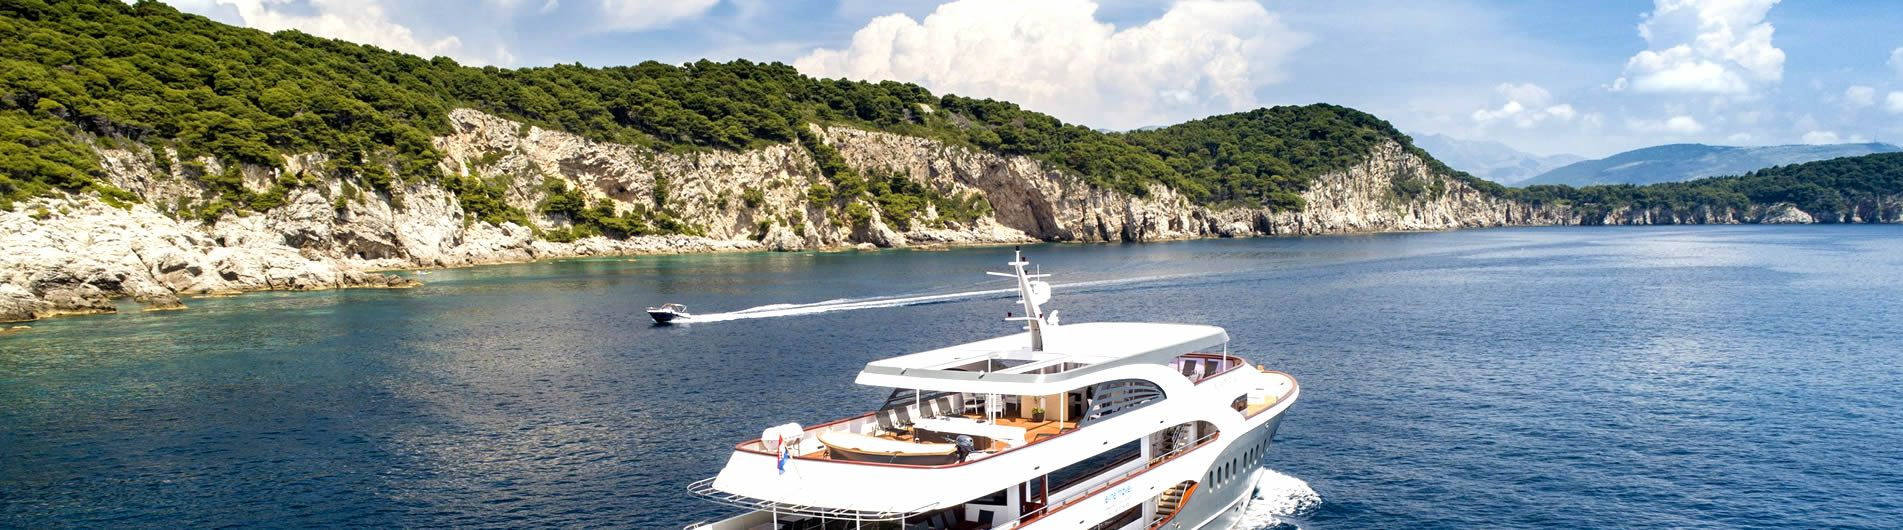 Adriatic Cruise - Optional Cruise Combination